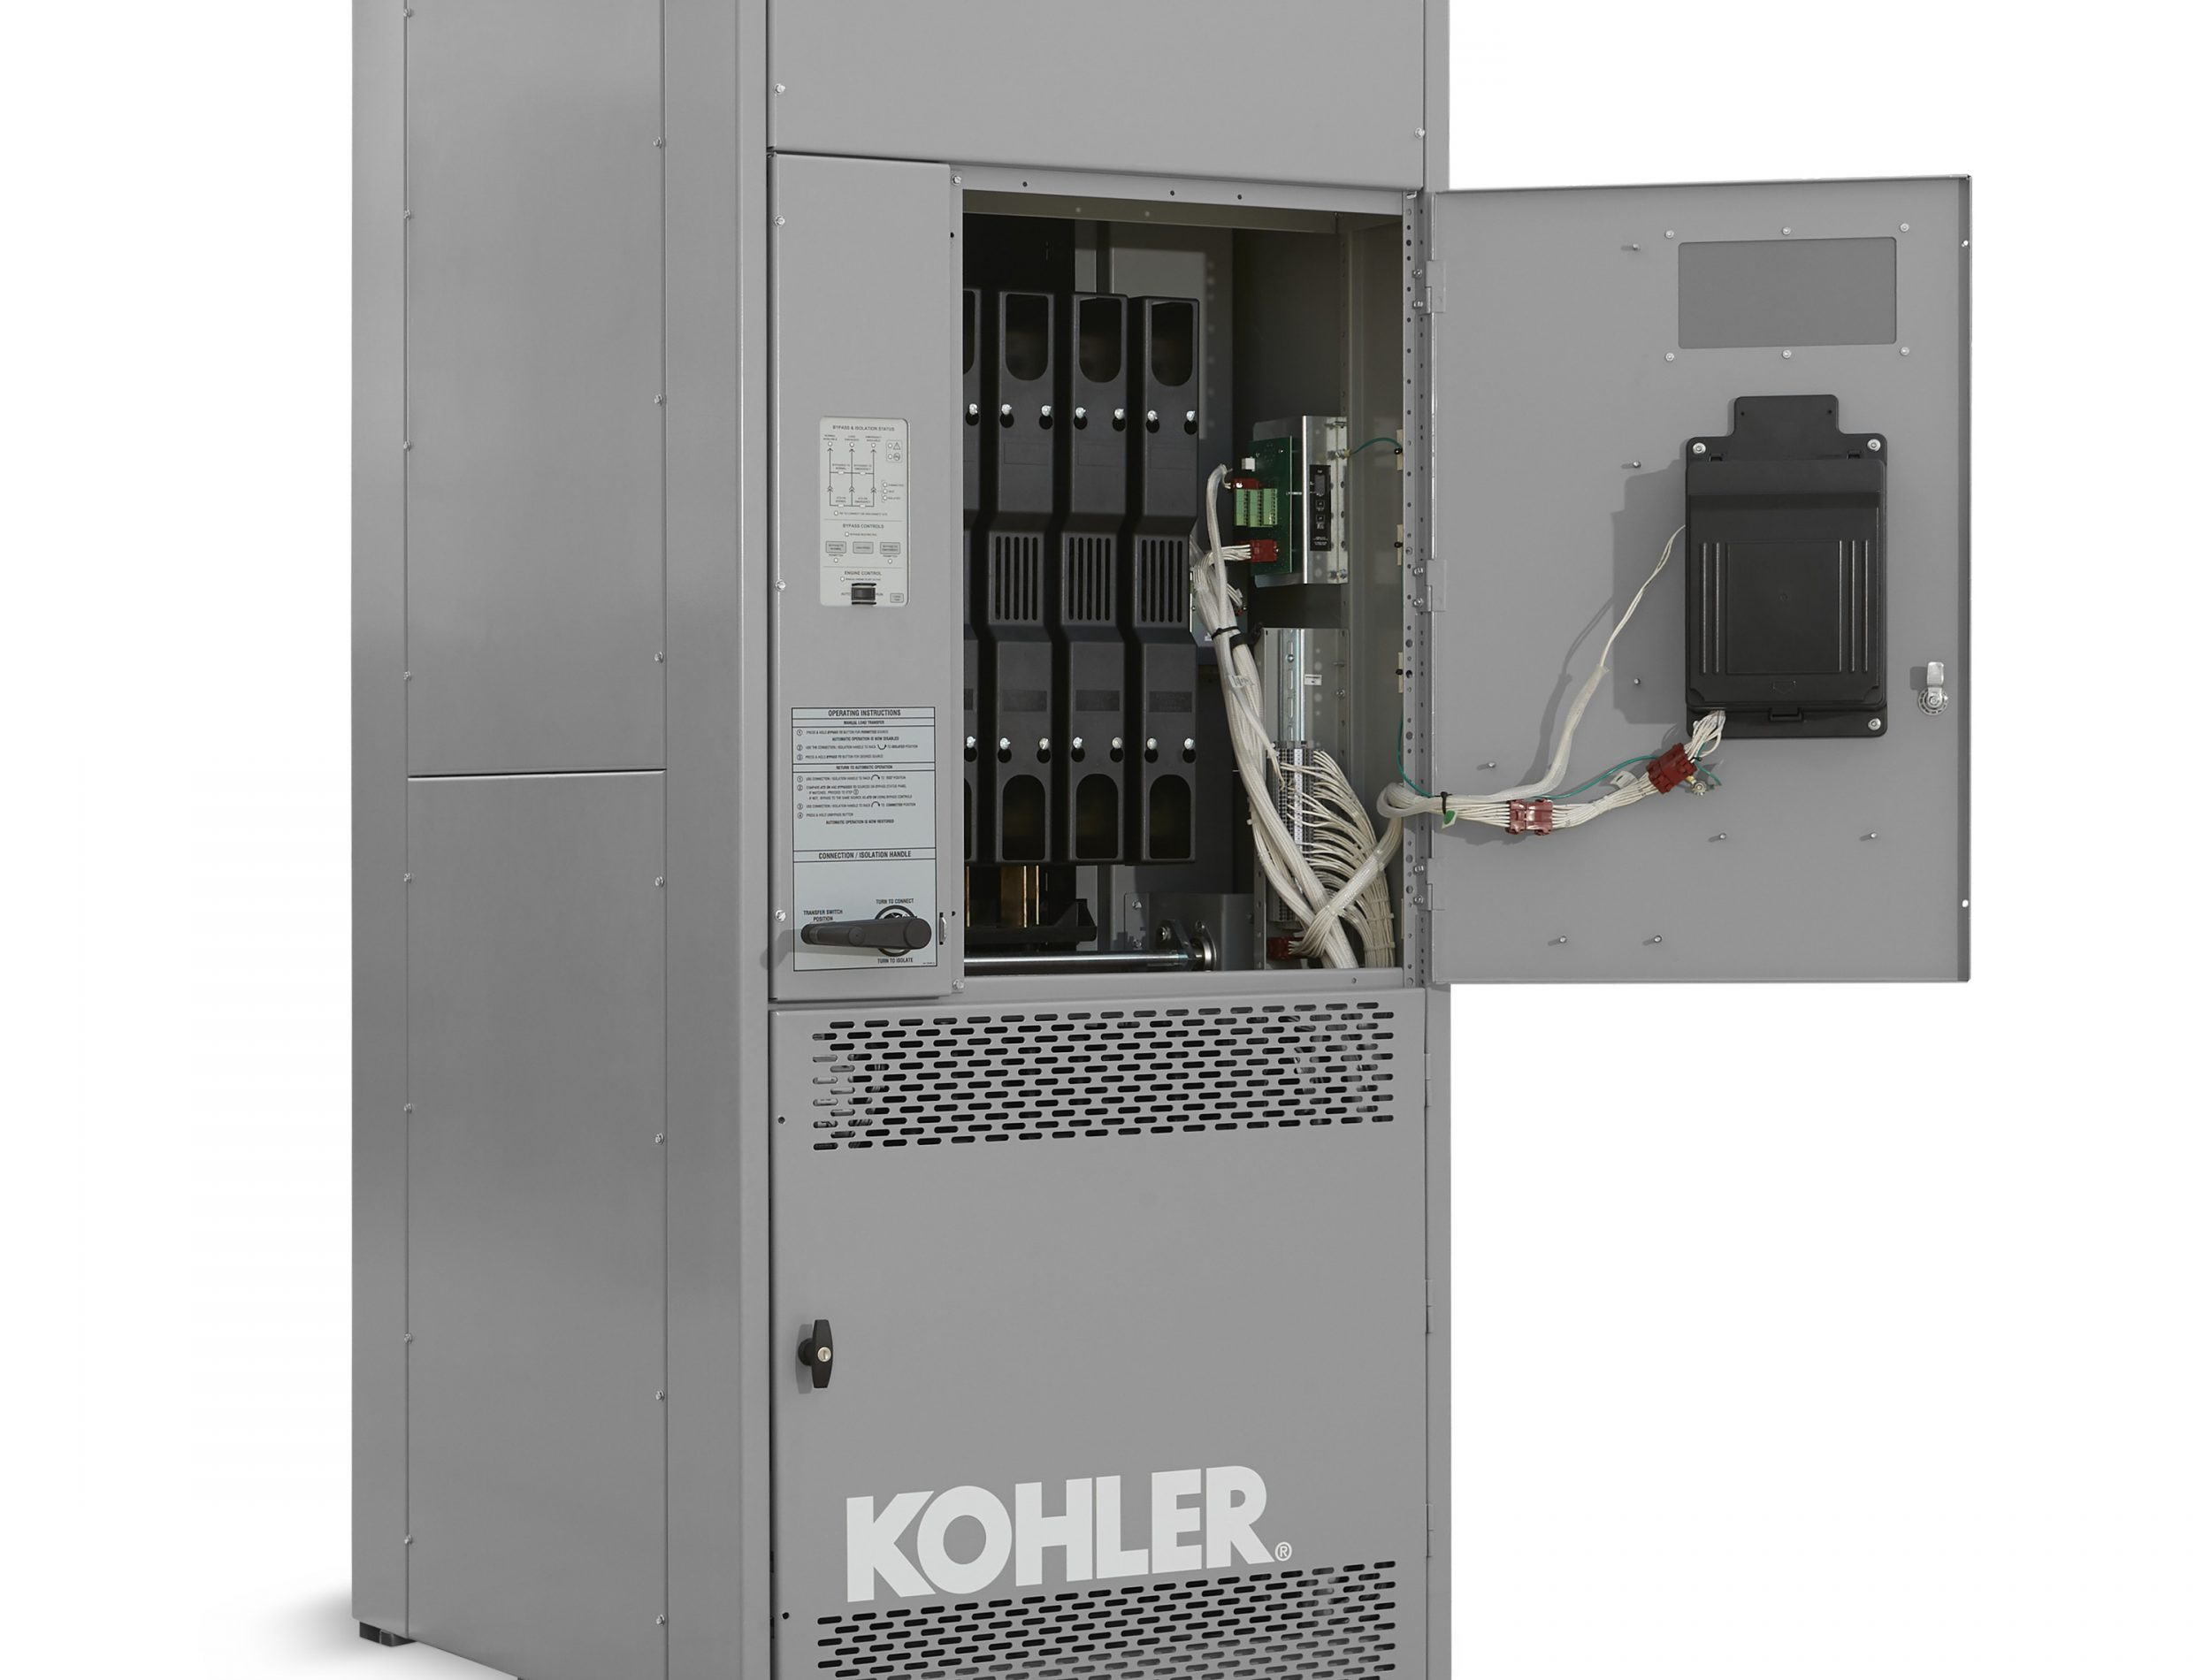 KOHLER Unveils Electrically Operated Transfer Switches